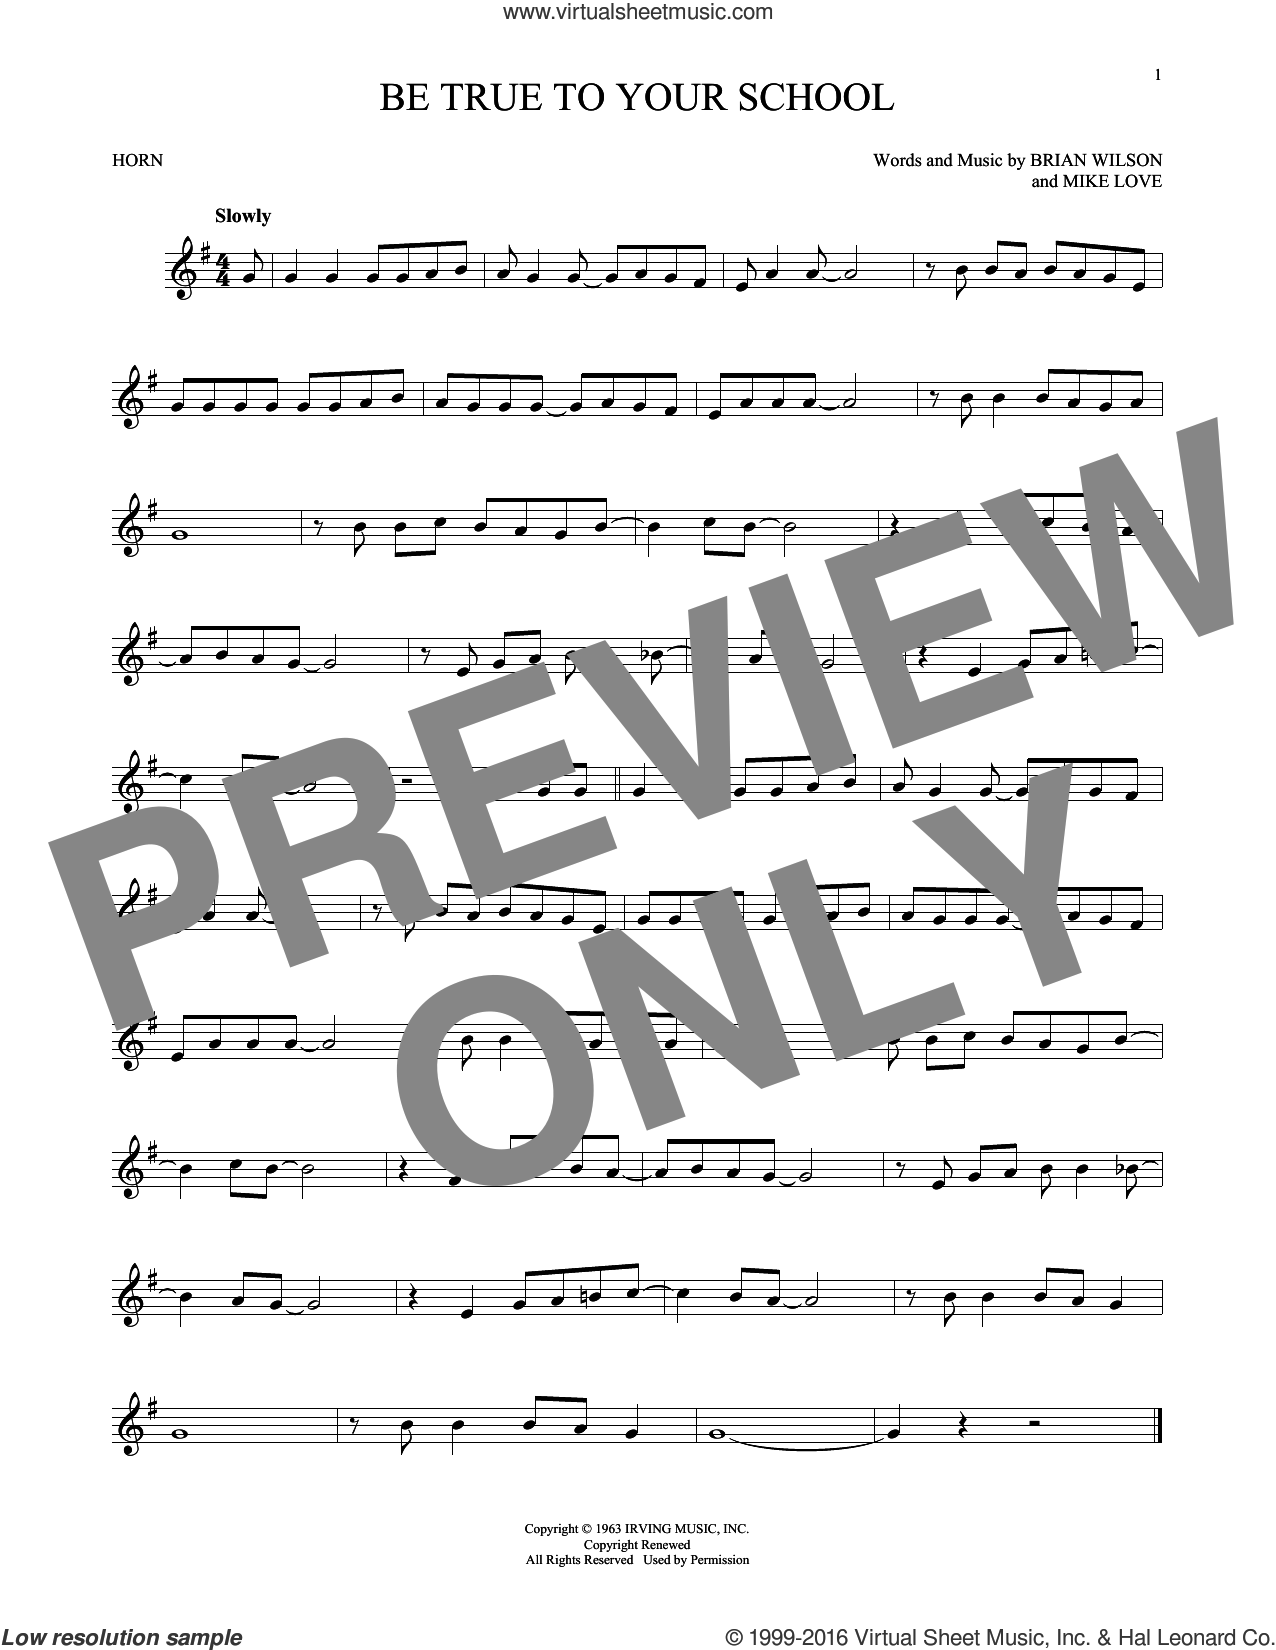 Be True To Your School sheet music for horn solo by Mike Love